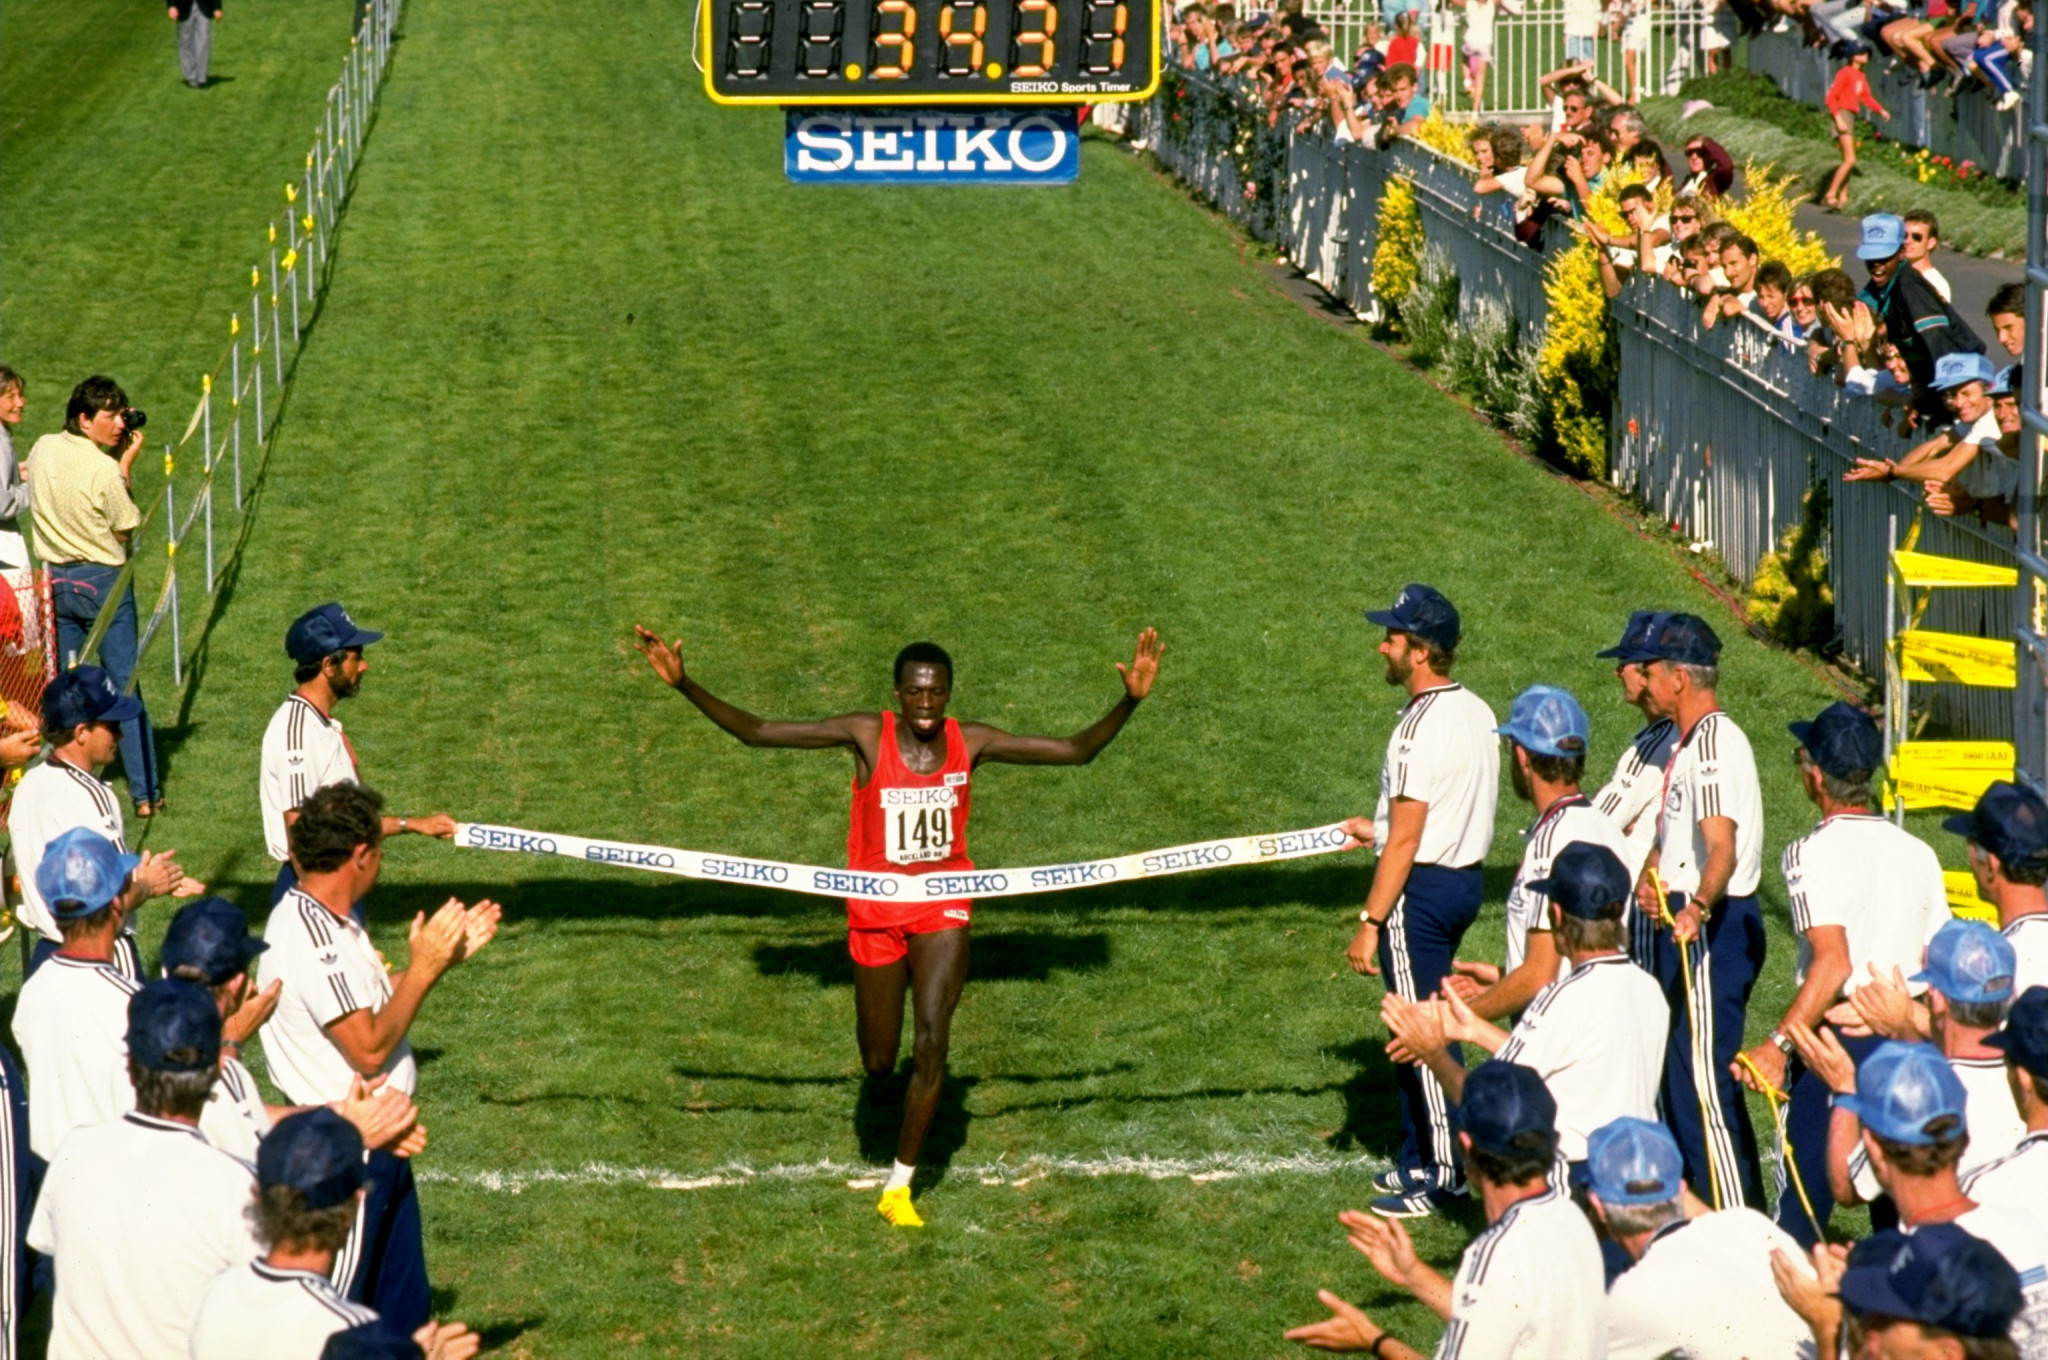 The only other time the IAAF World Cross Country Championships have taken place in Oceania was in Auckland in 1988 when the men's race was won by Kenya's John Ngugi ©Getty Images